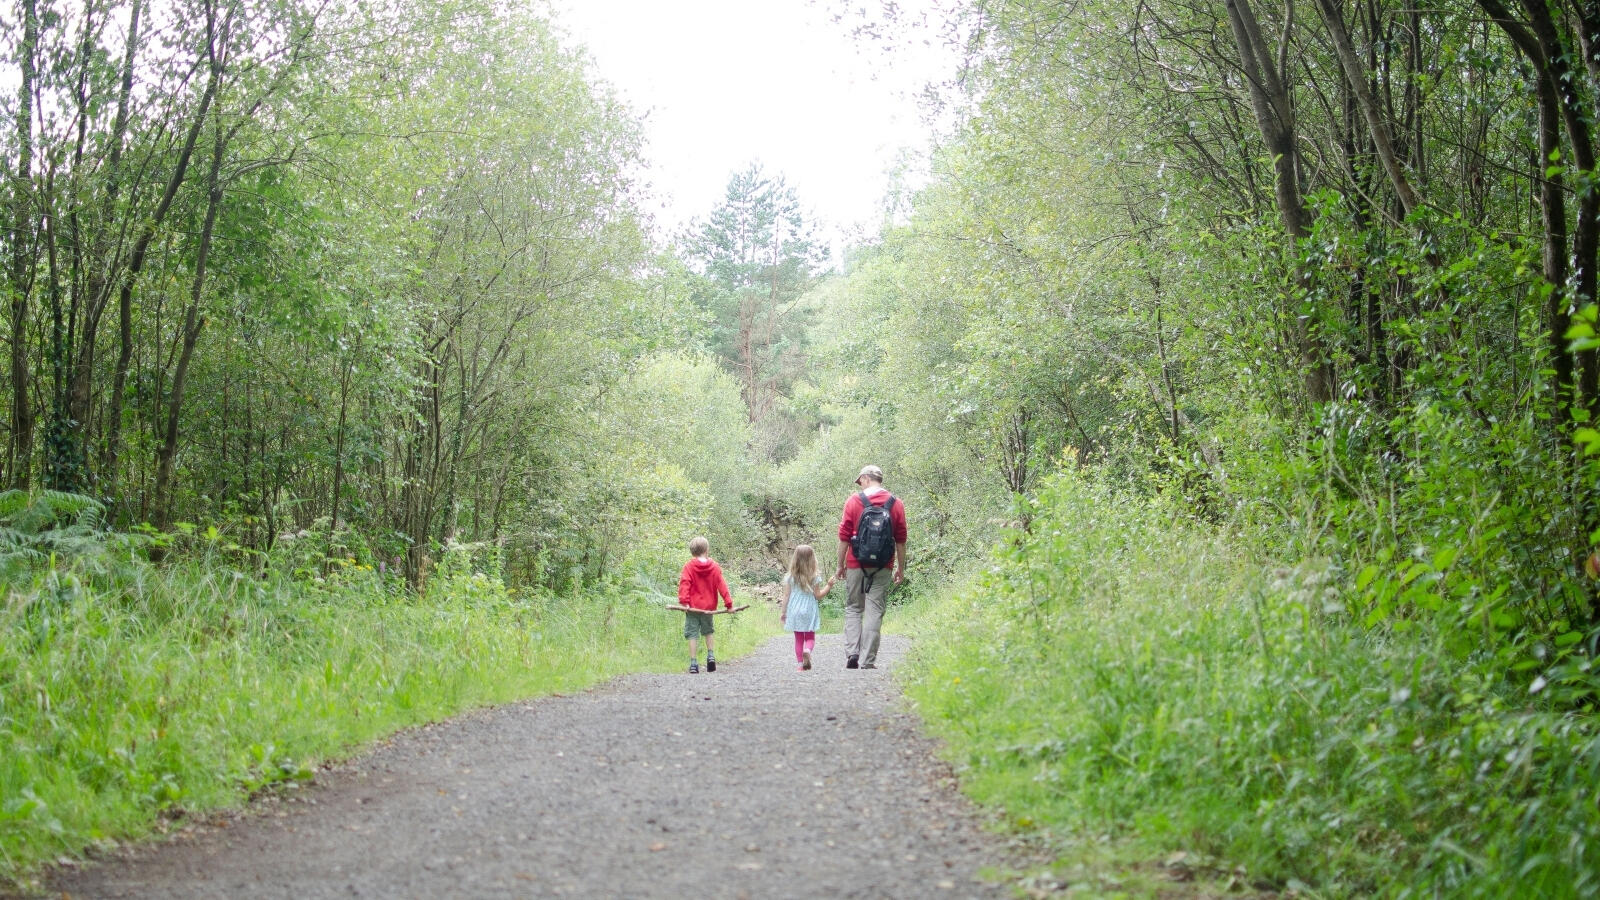 Ideas for fun outdoor family activities to try this summer